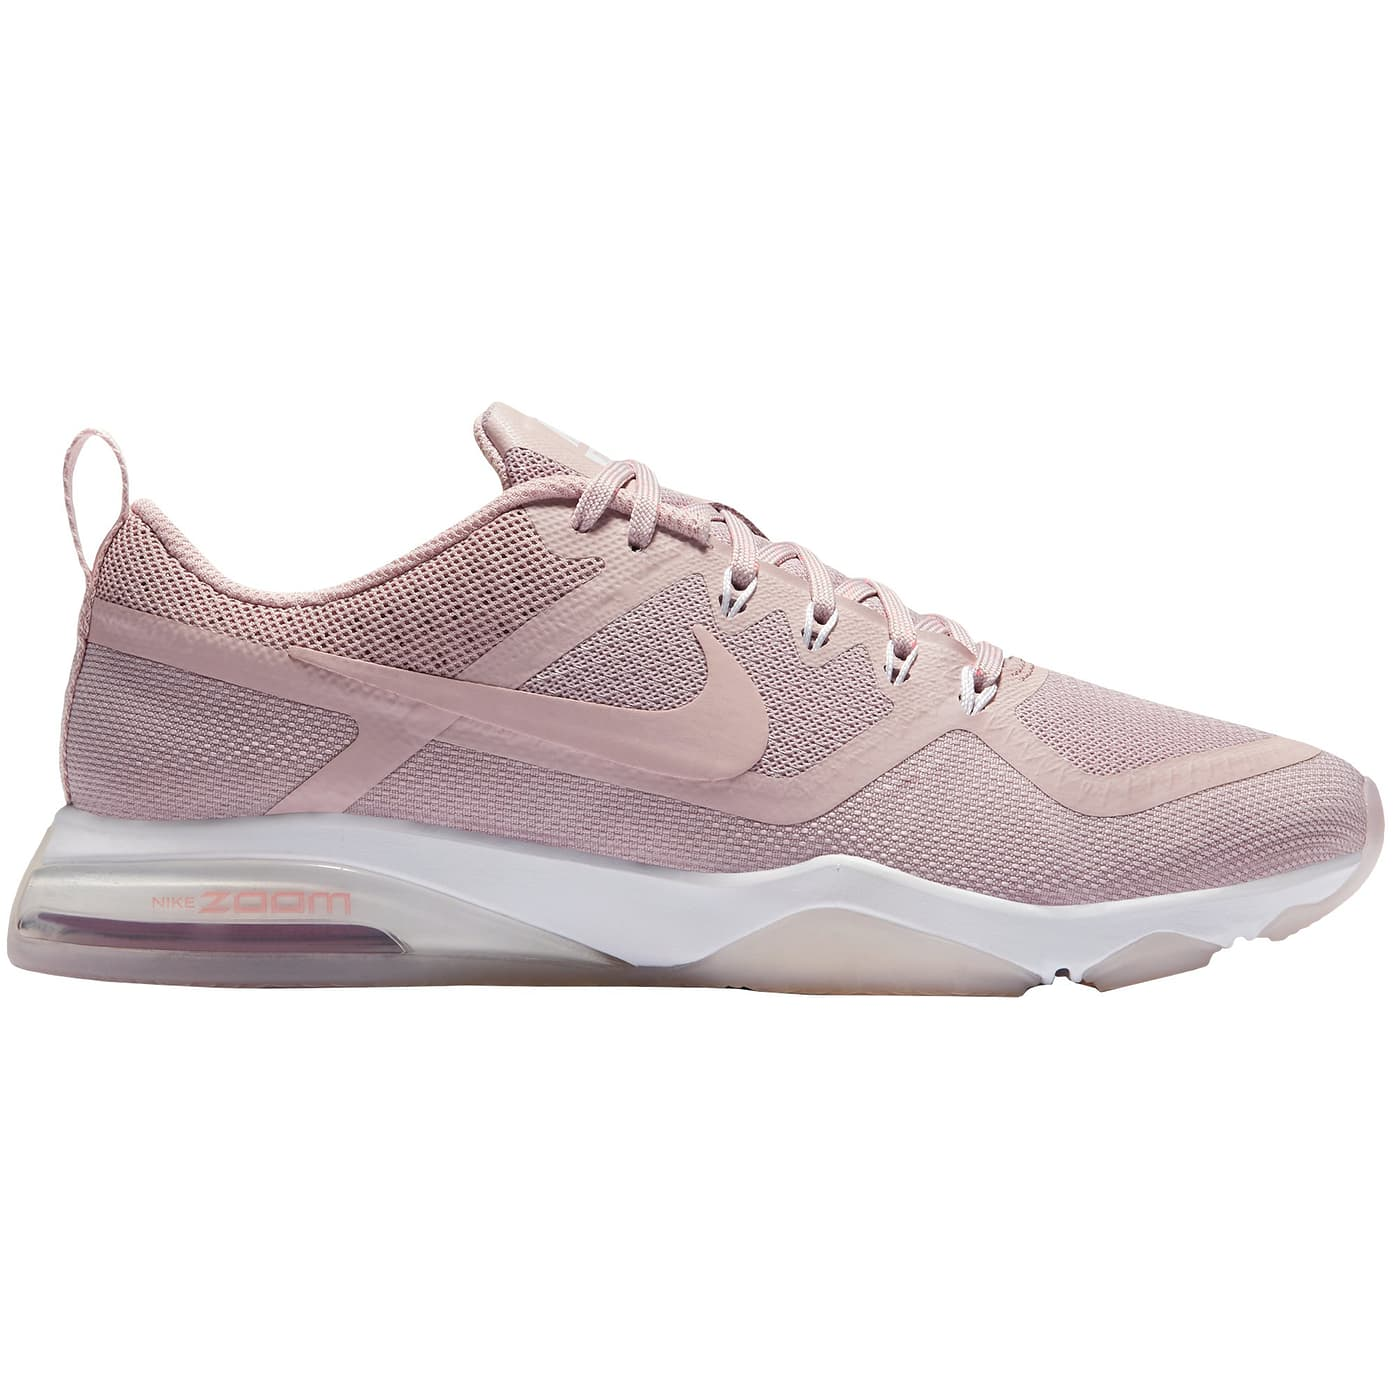 Nike Pour Chaussures Femme De Fitness yYbf76gv